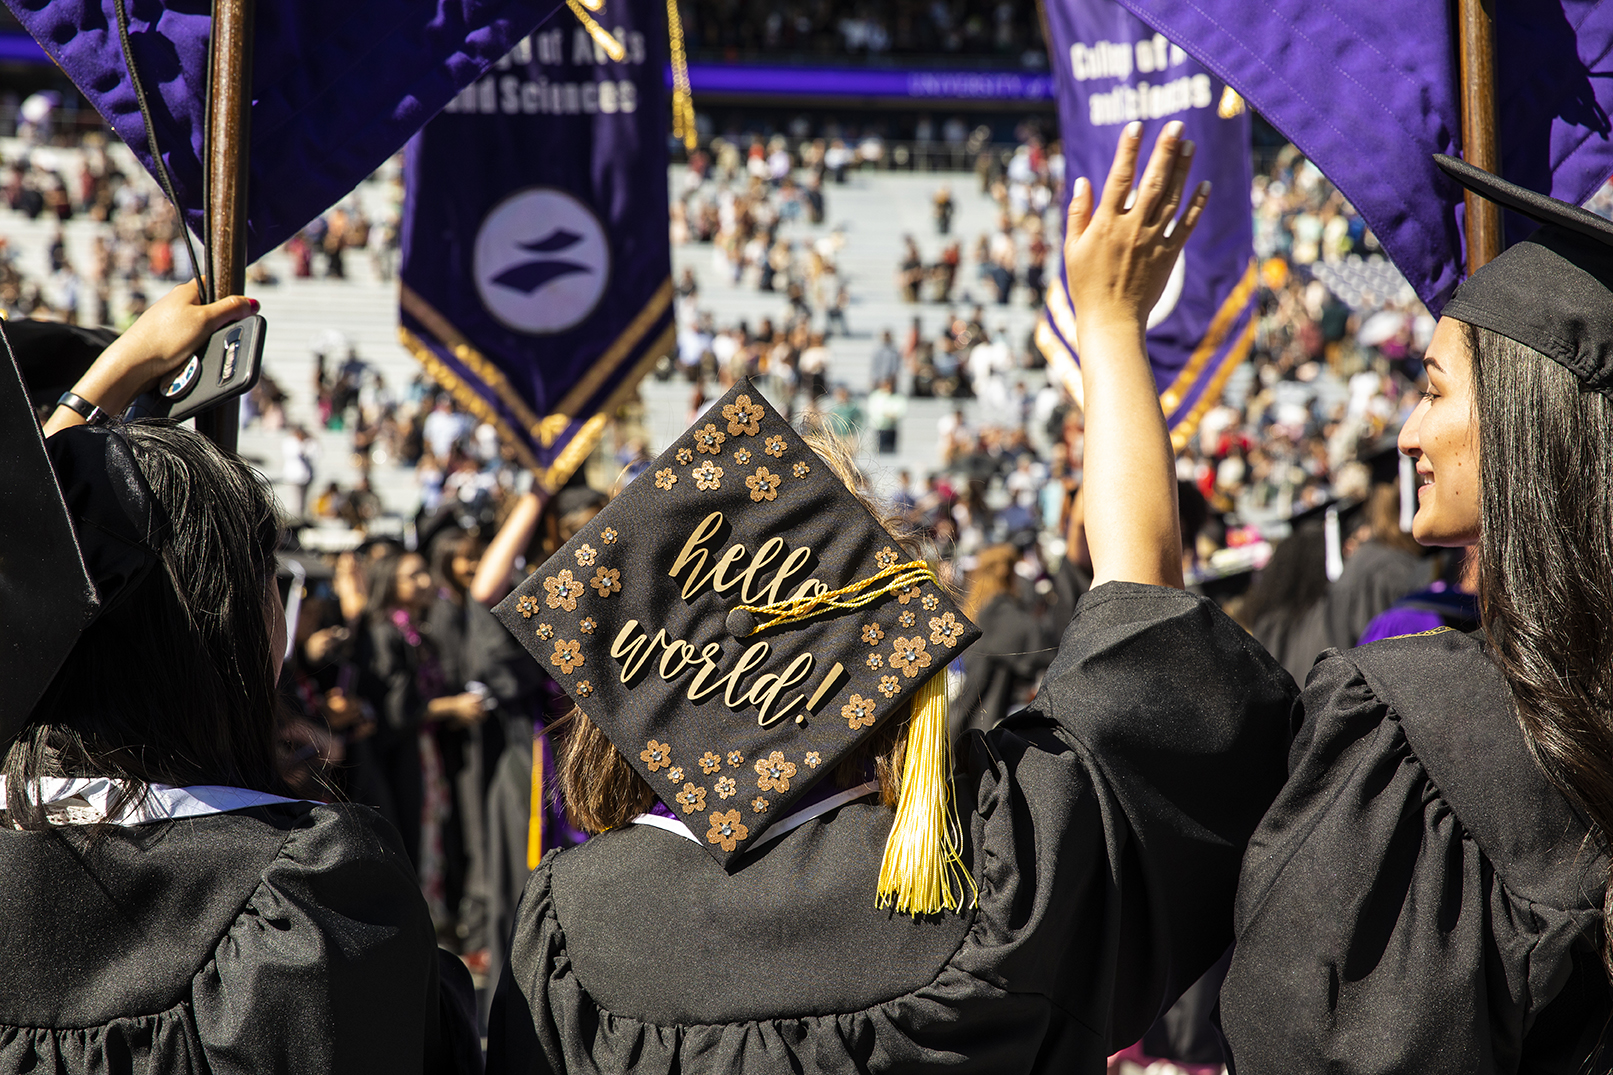 On June 15, 2019, the University of Washington honored more than 6,000 graduates in the 144th Annual Commencement Exercises at Husky Stadium. Nearly 13,795 UW degrees were conferred at the Seattle campus in June.​ (Photo by Mark Stone)